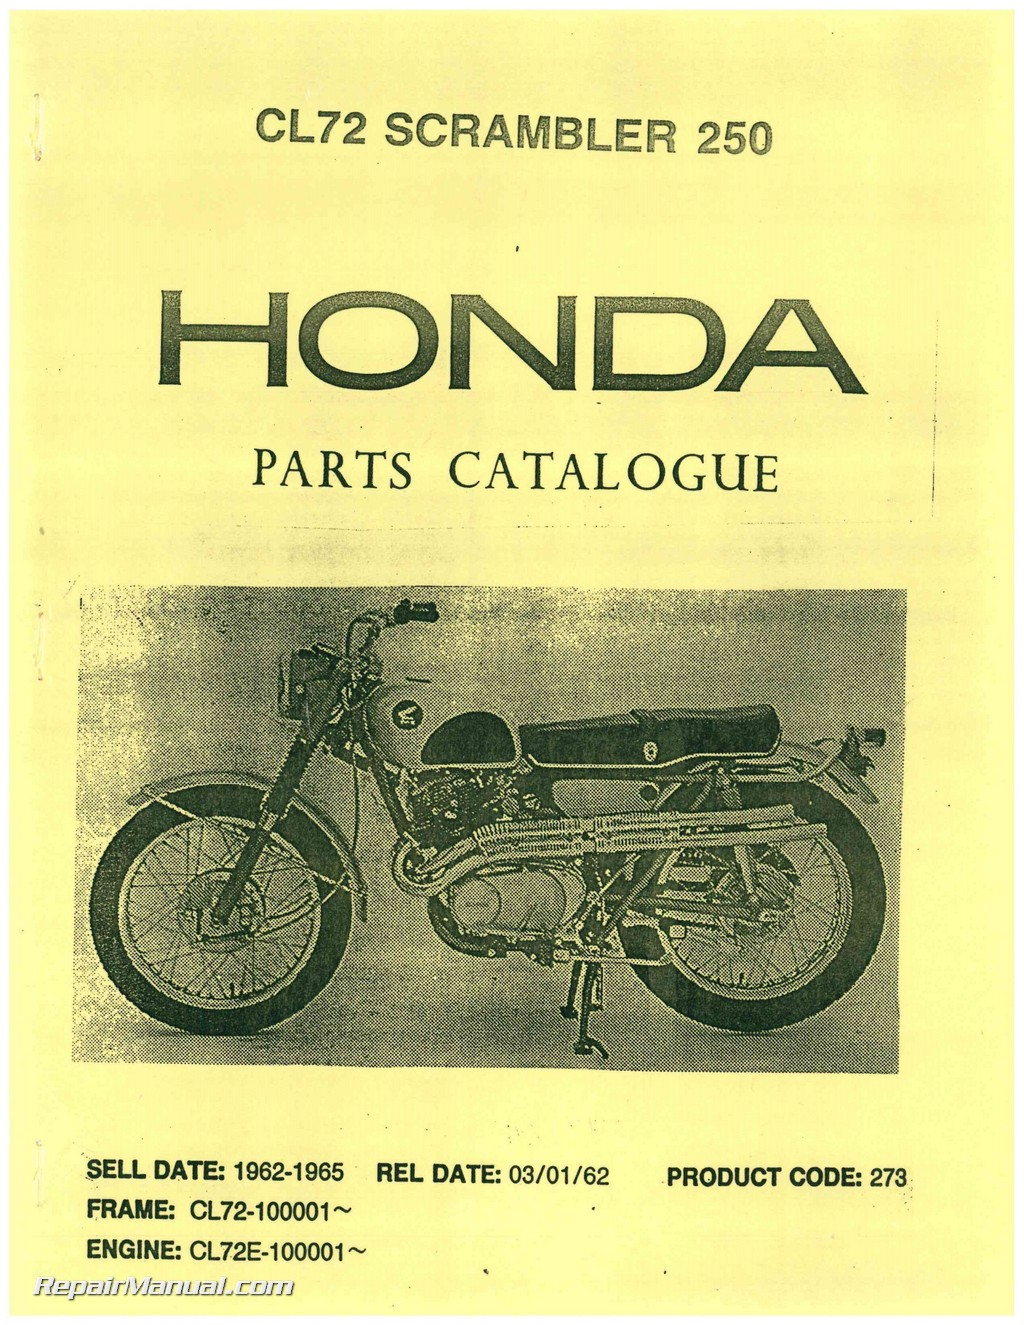 honda cl scrambler parts manual repair manuals online honda cl72 scrambler 250 parts manual page 1